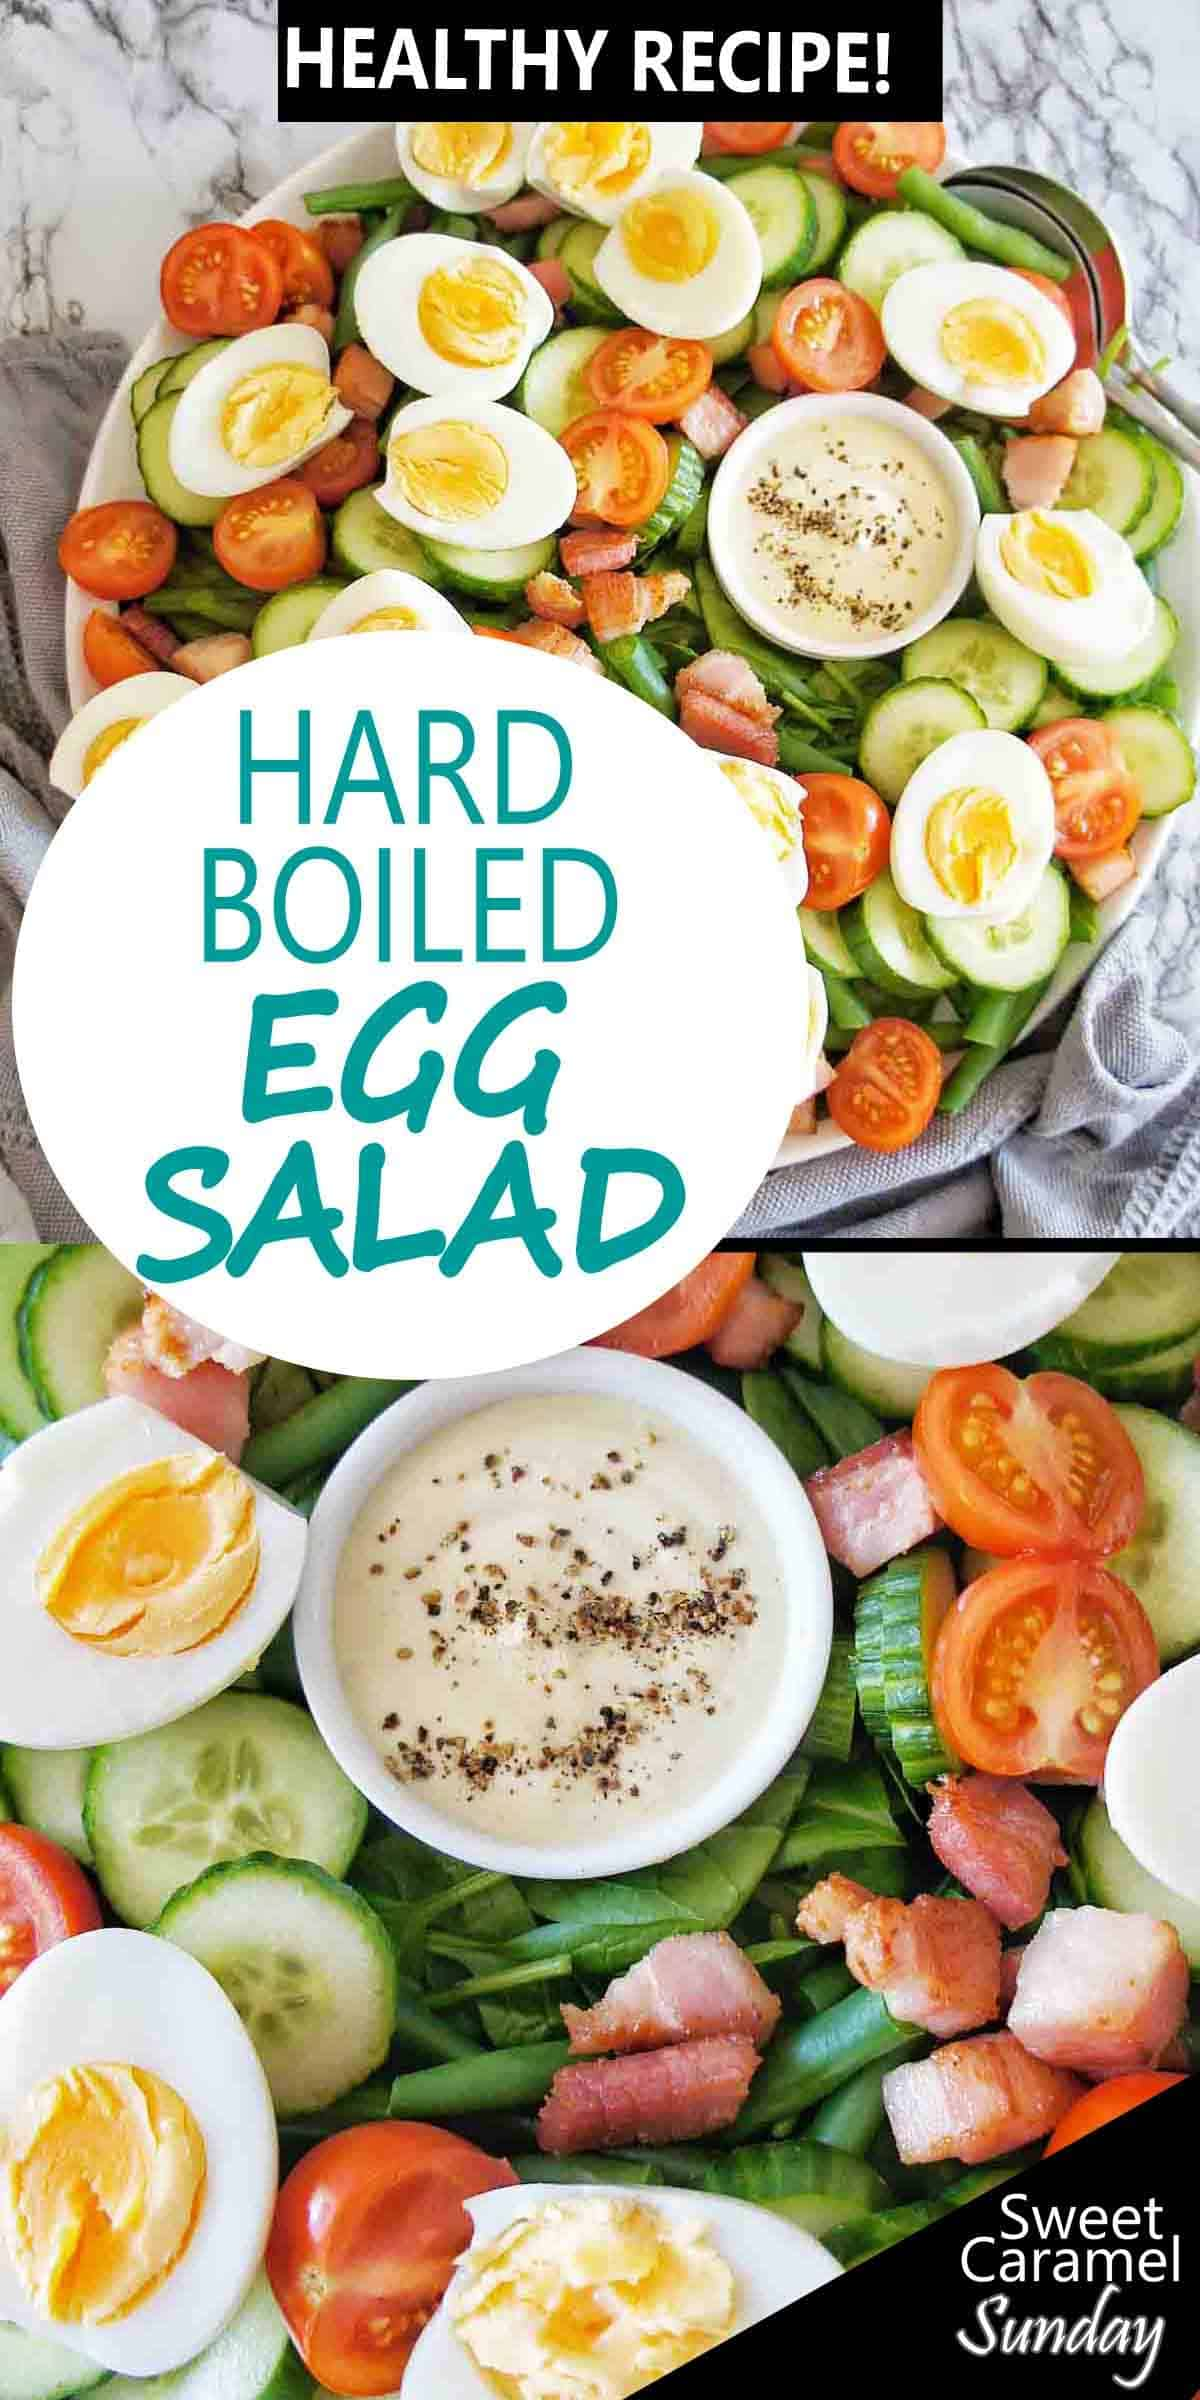 Hard Boiled Egg Salad with text overlay